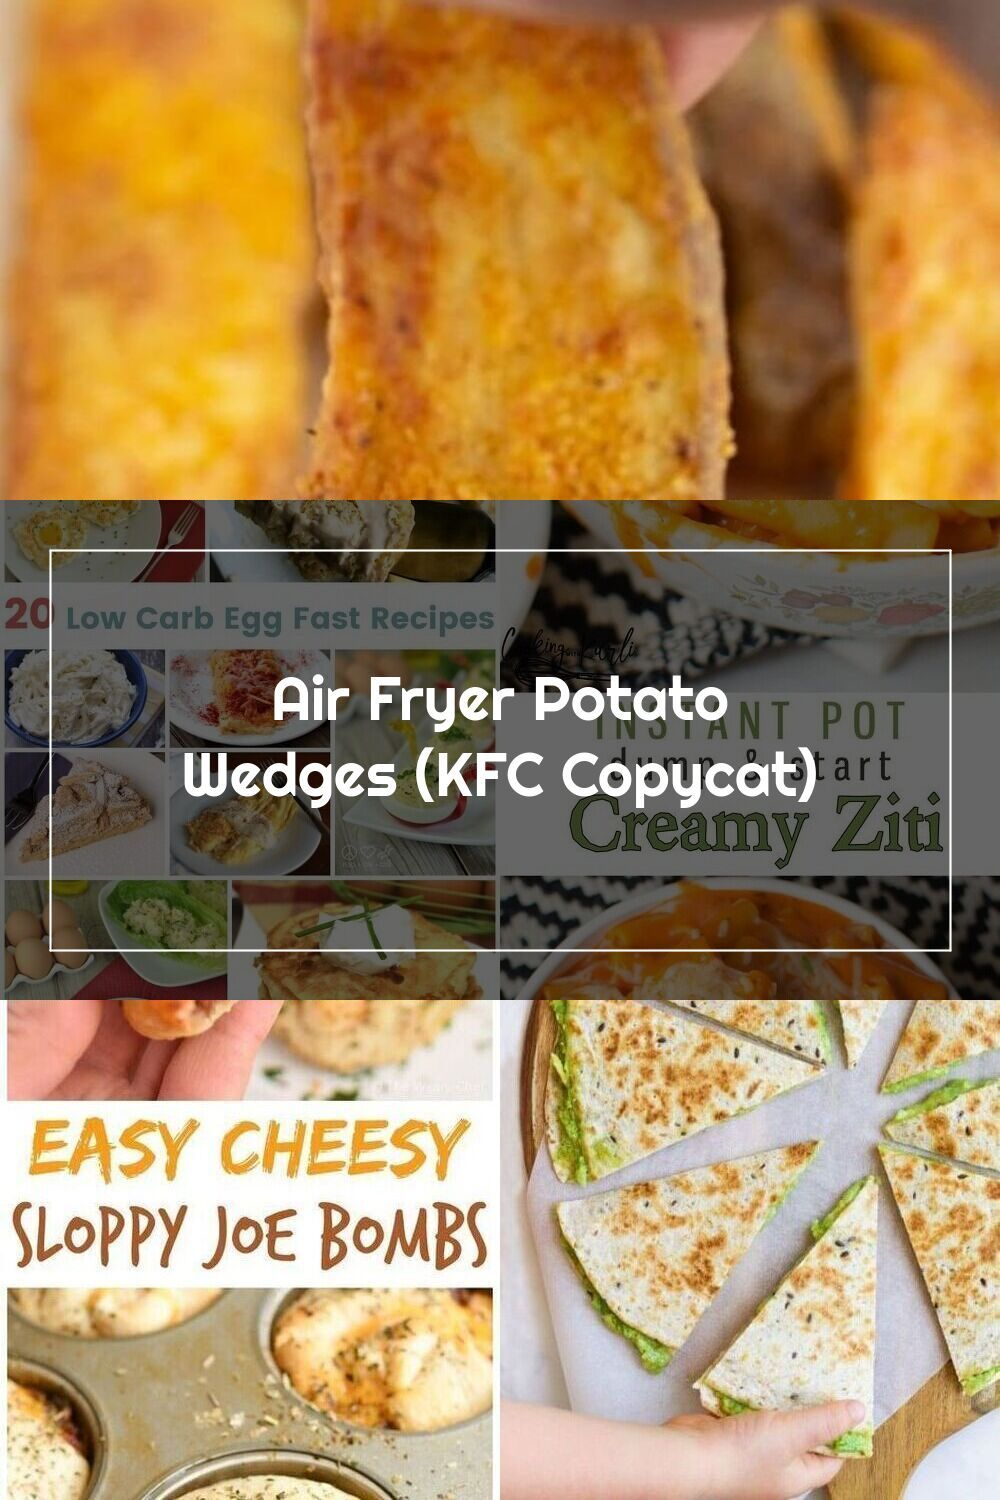 These Copycat KFC Potato Wedges are made in the Air Fryer